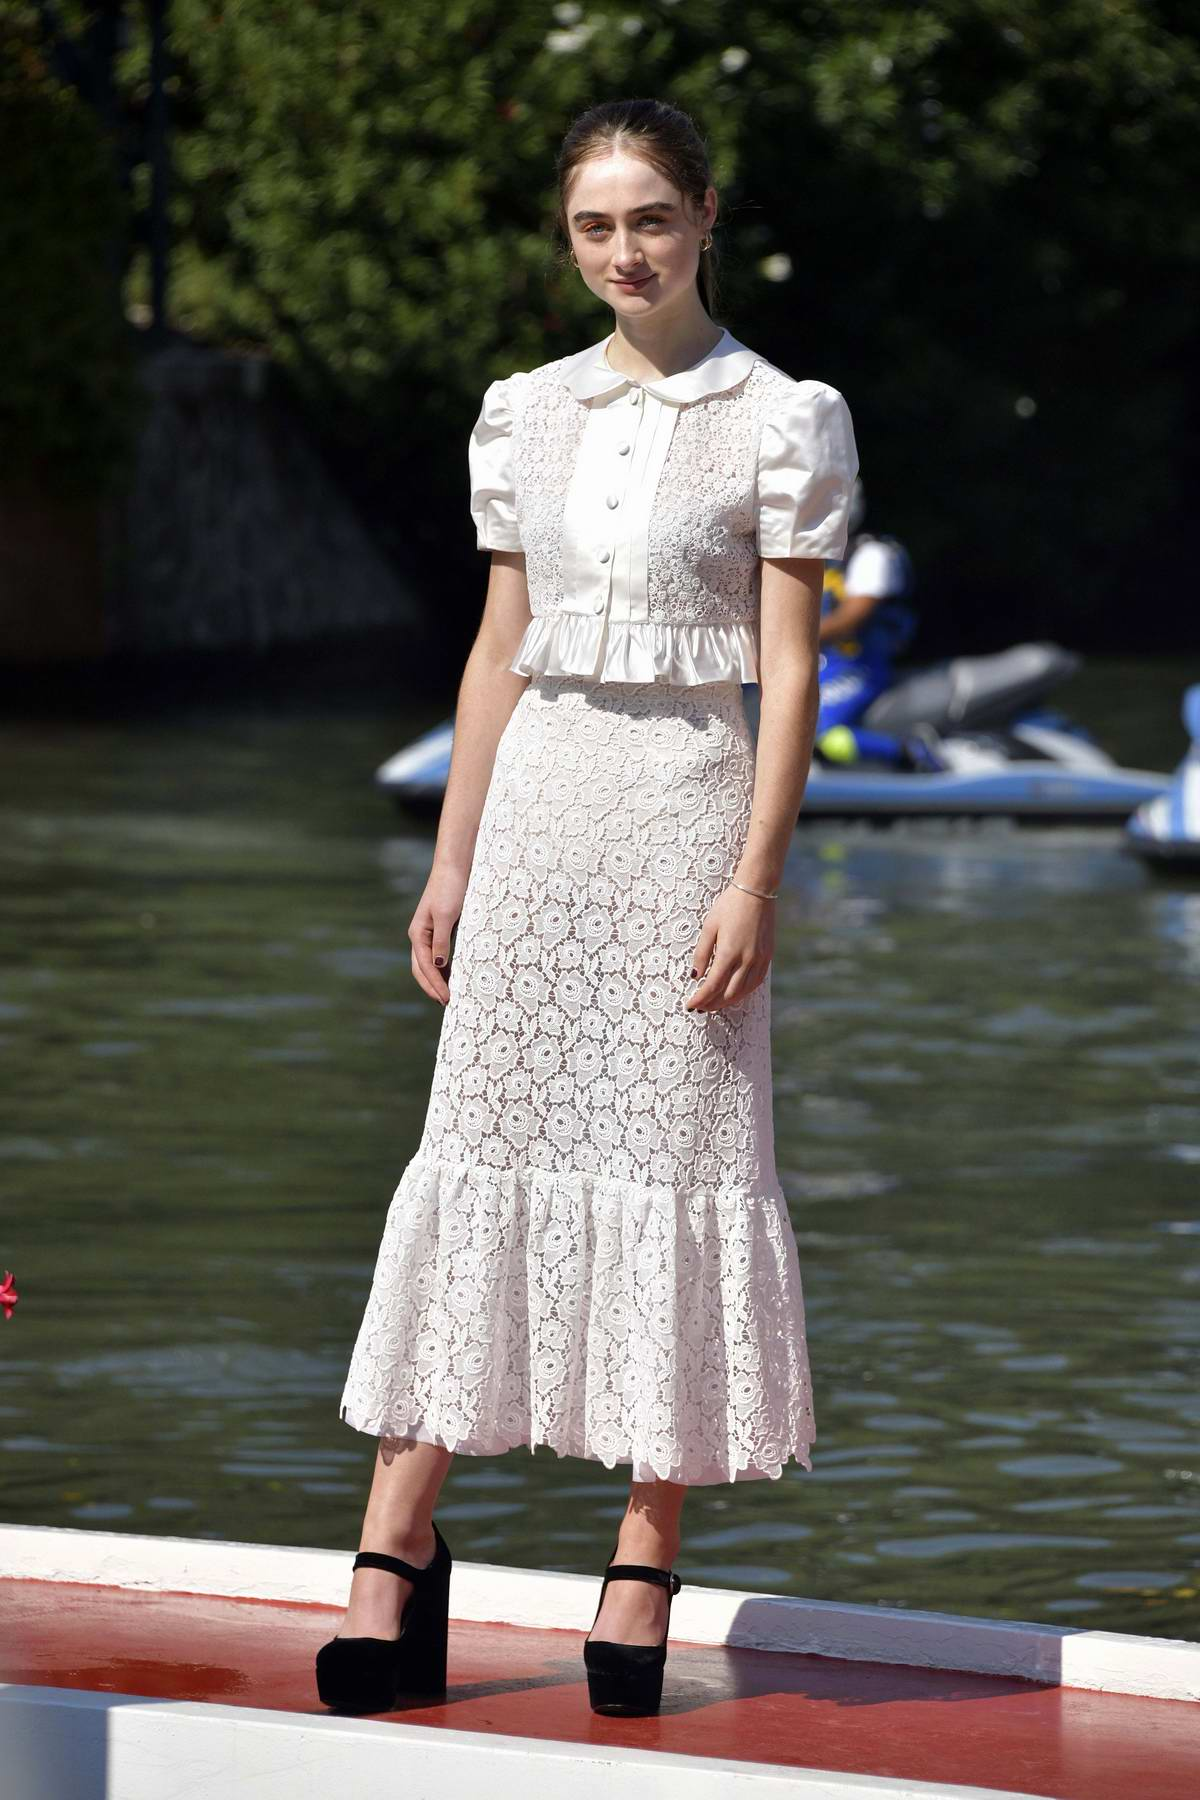 Raffey Cassidy seen arriving at the Excelsior during the 77th Venice Film Festival in Venice, Italy